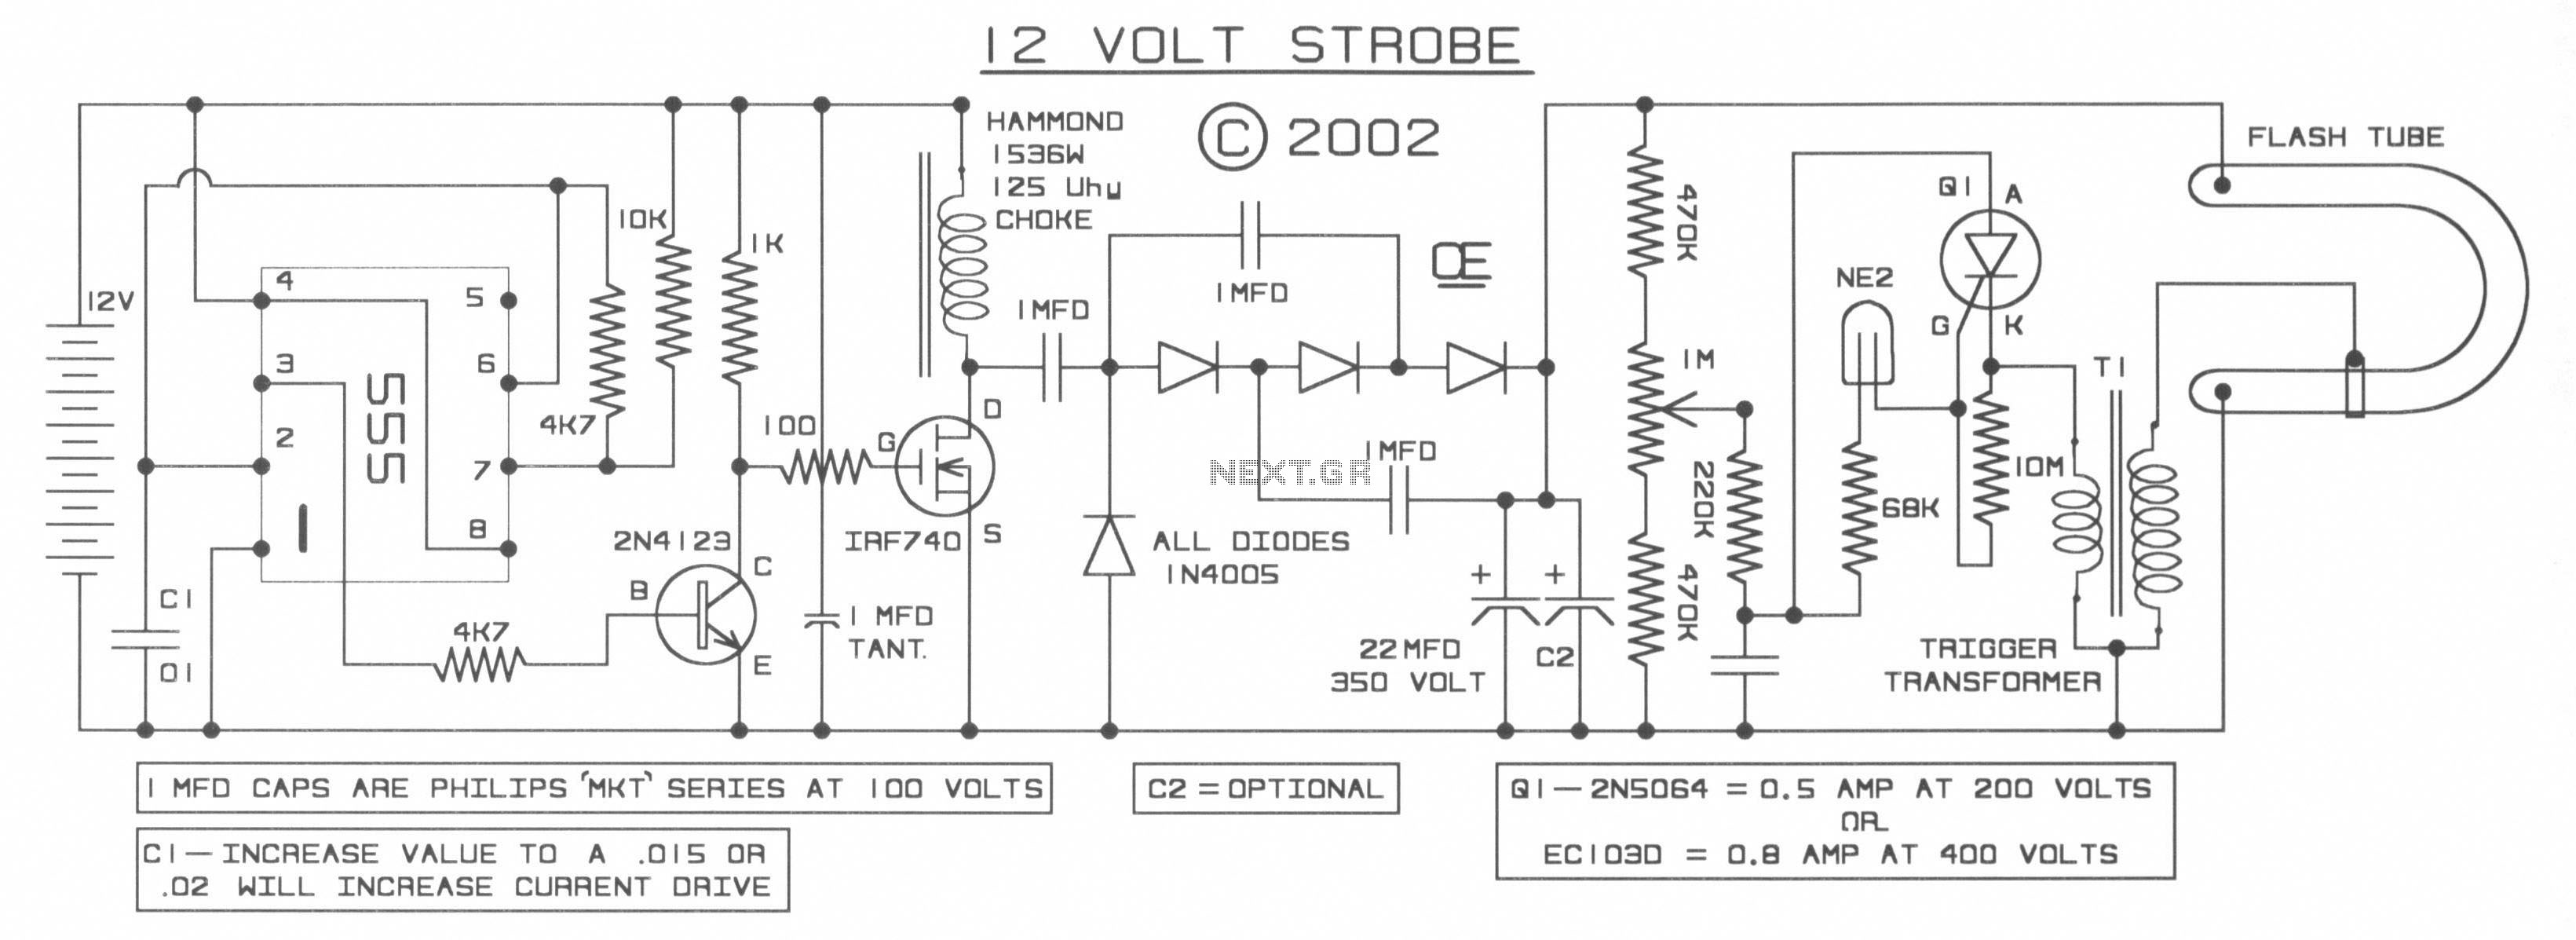 Wiring Diagram Whelen Beacon Light Bonanza Diagrams Data Base Gamma 2 Schematic Rh Bestkodiaddons Co On 4 For Strobe Get Free